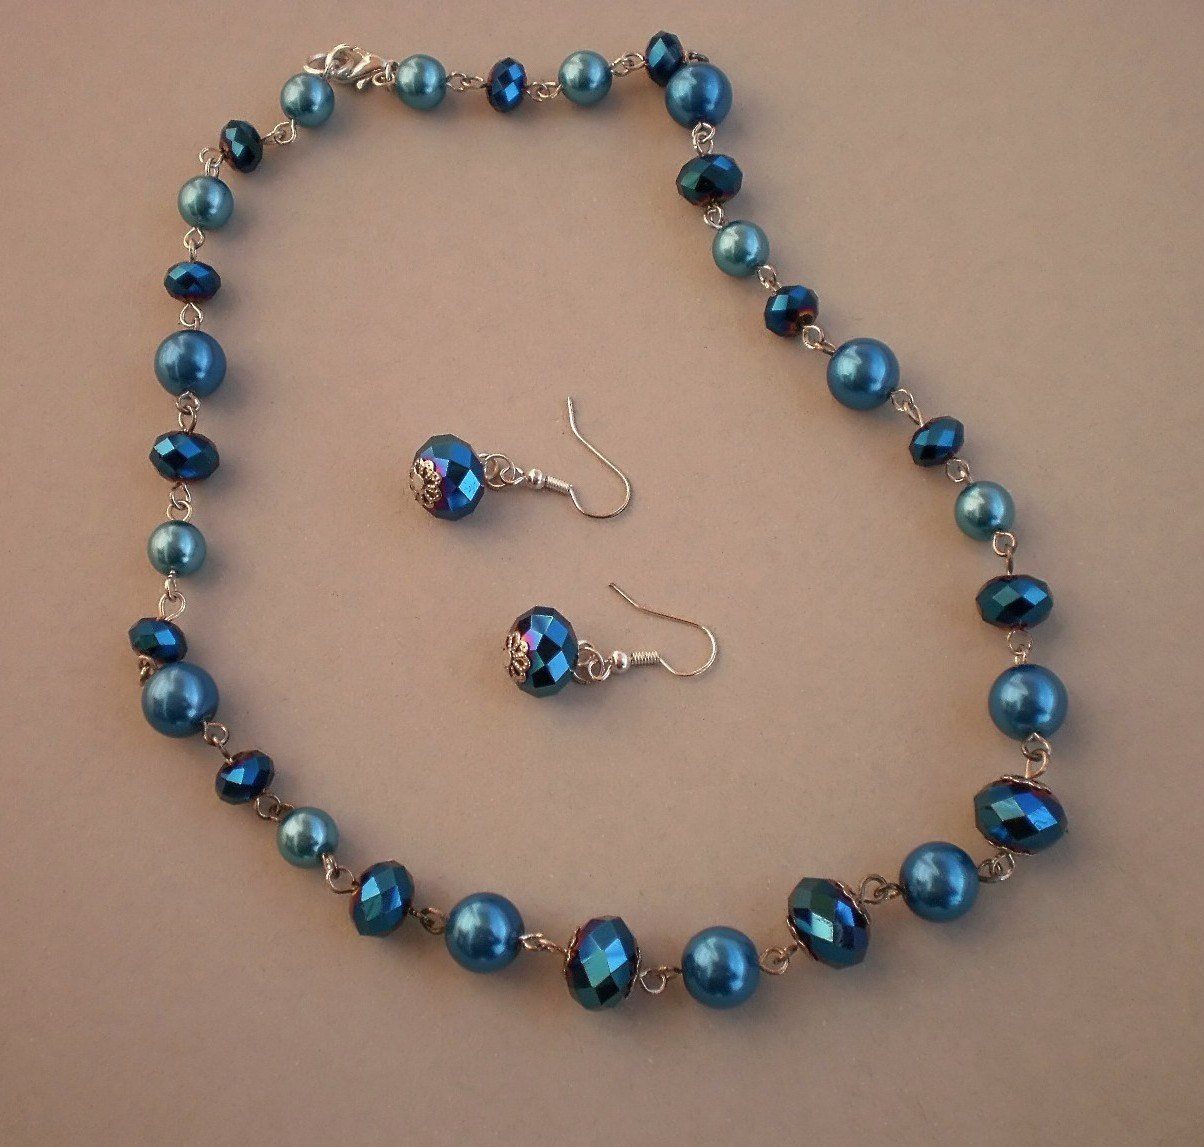 .Lustrous Blue teal tone Crystal Beads Necklace & Earrings Ocean Blue Pearl Glass Beads